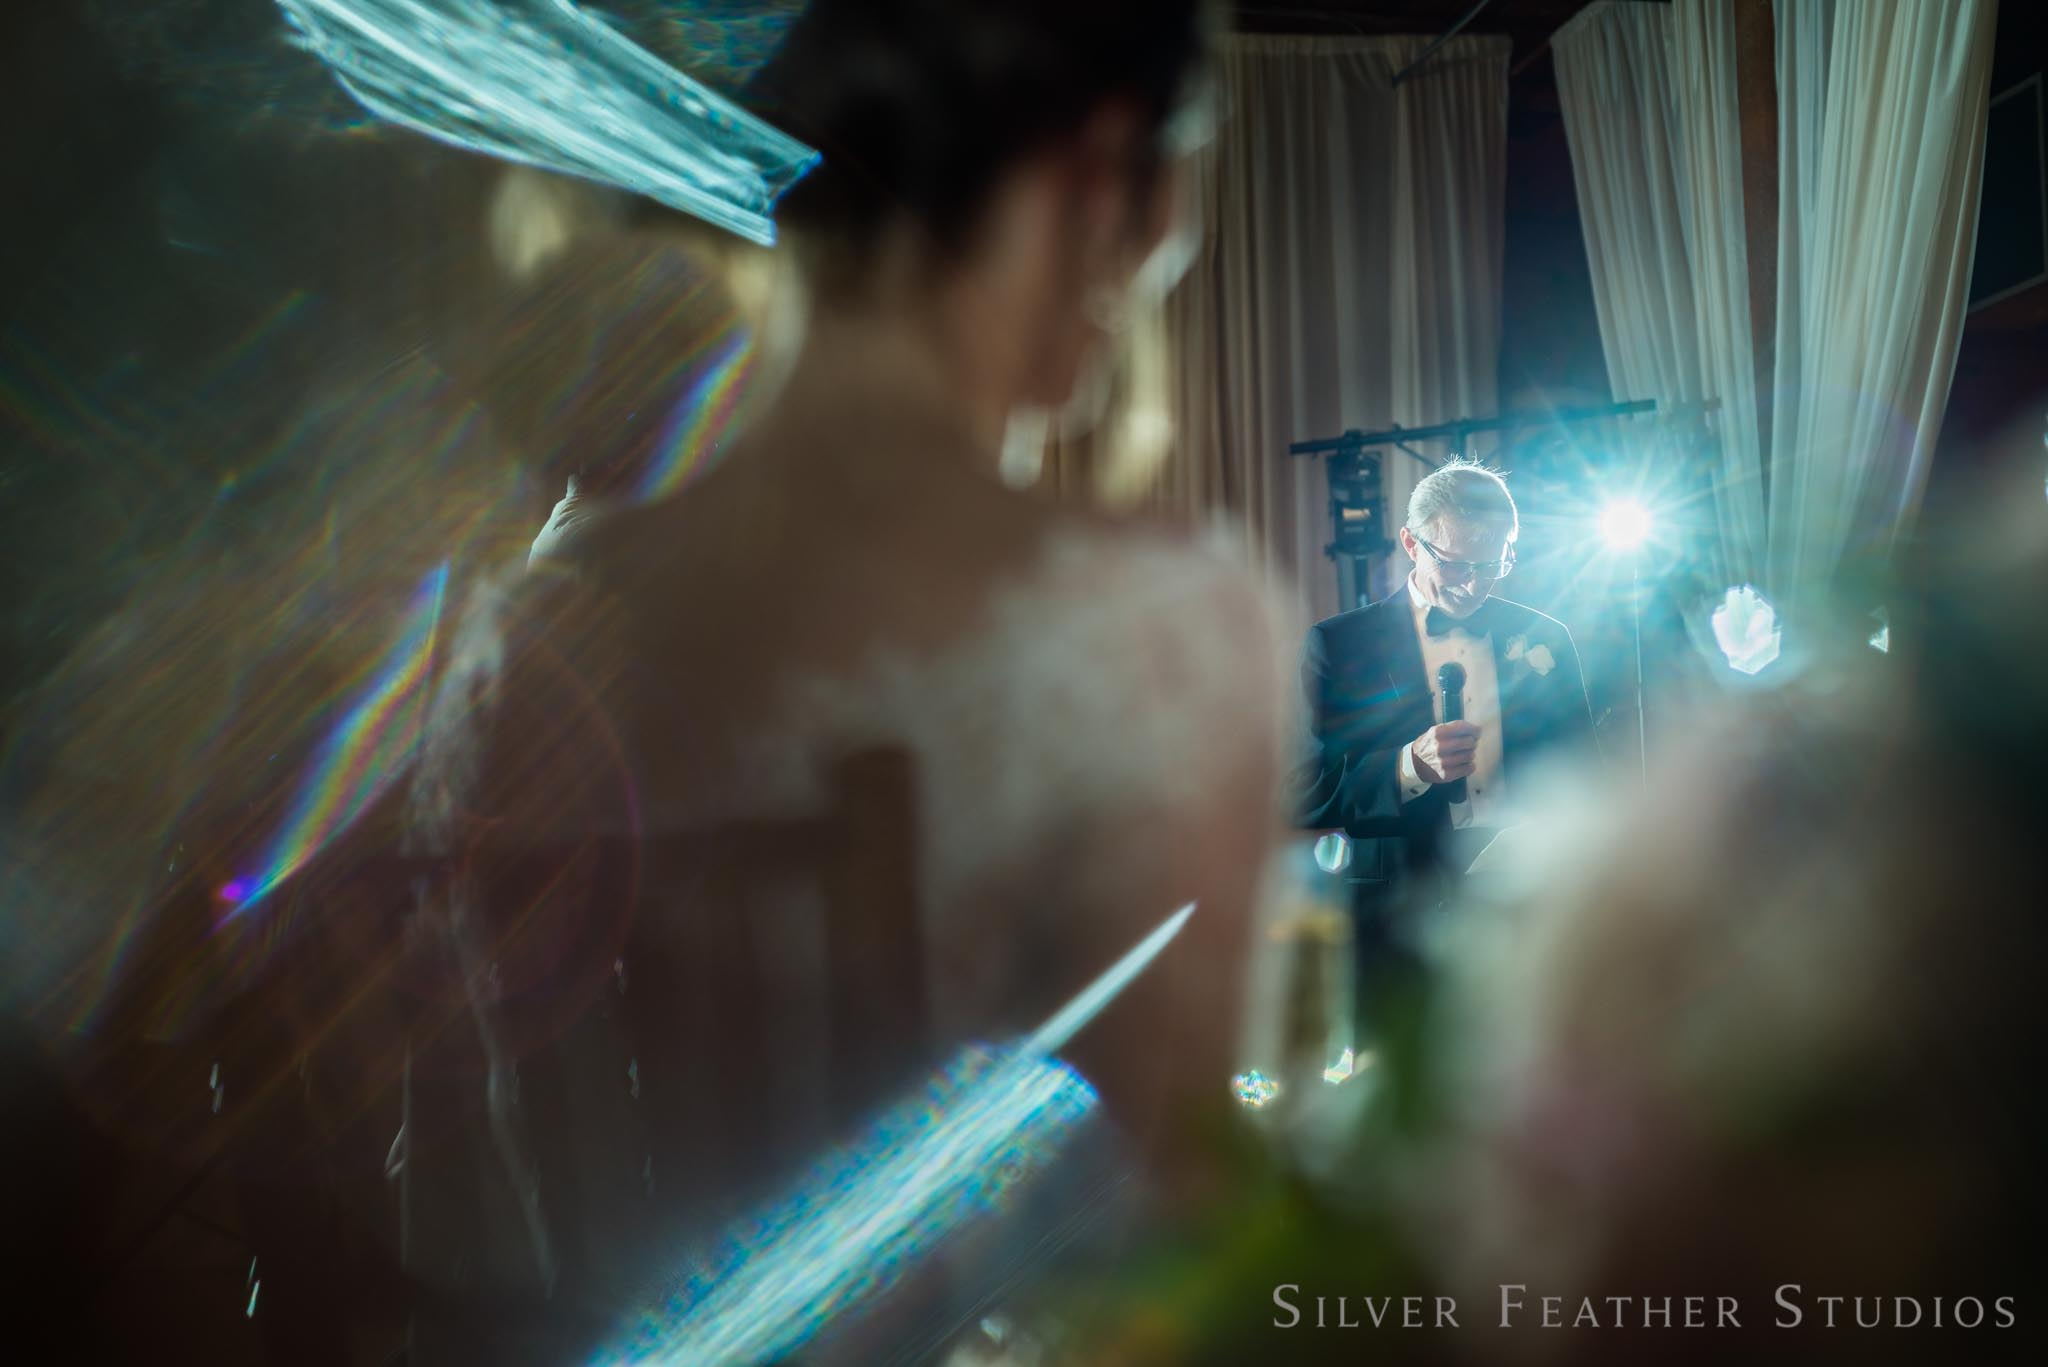 cotton-room-wedding-silver-feather-studios-049.jpg